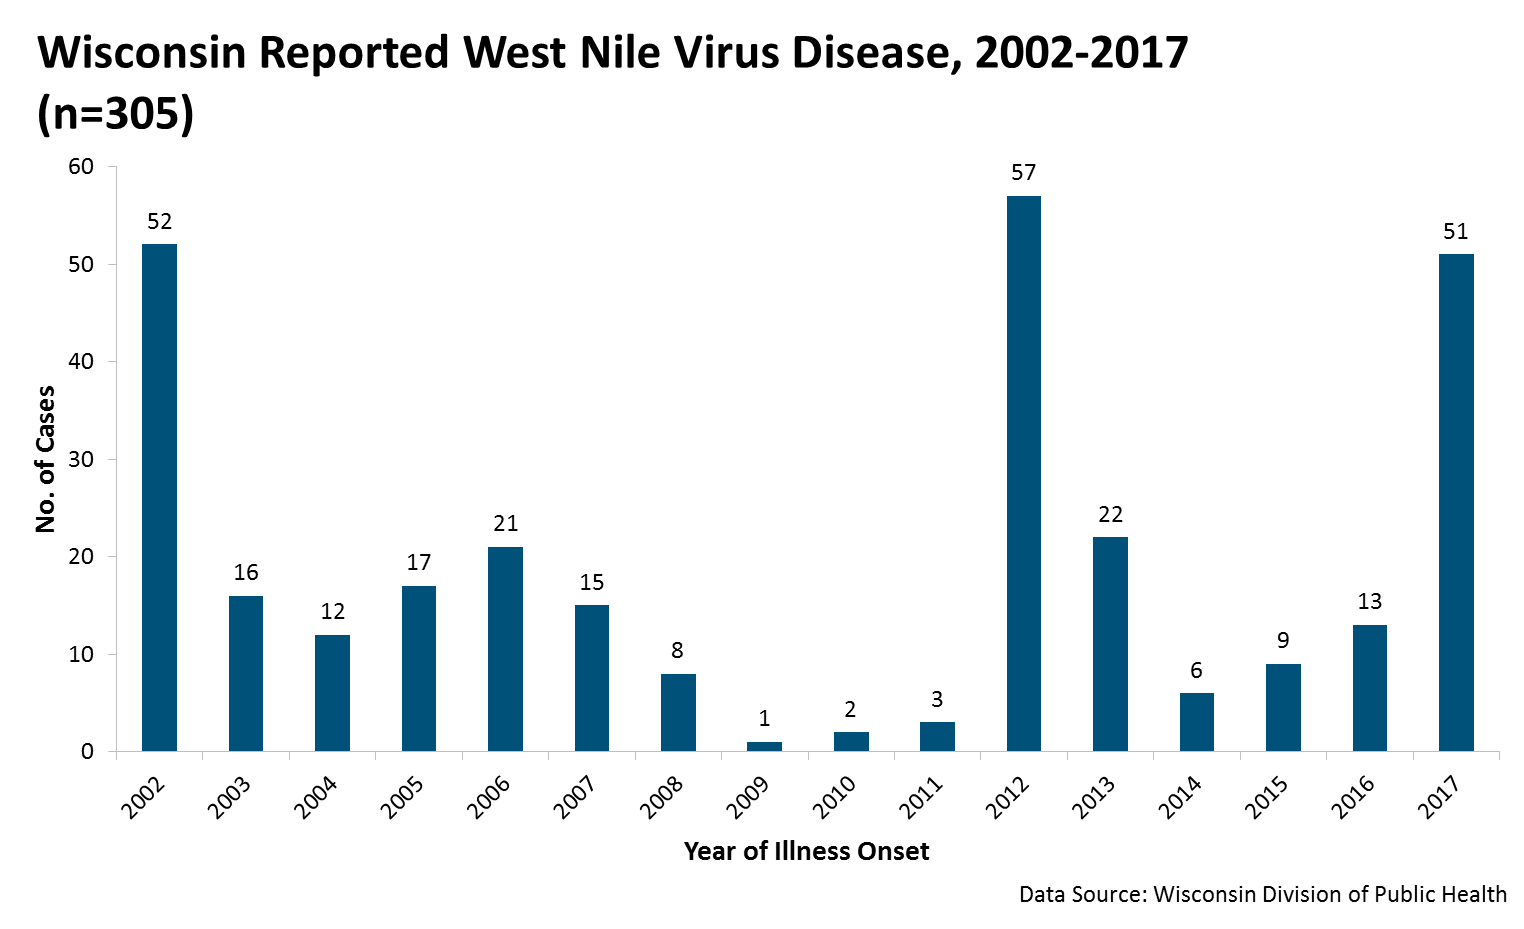 Graph of Reported West Nile Virus Disease 2002-2017